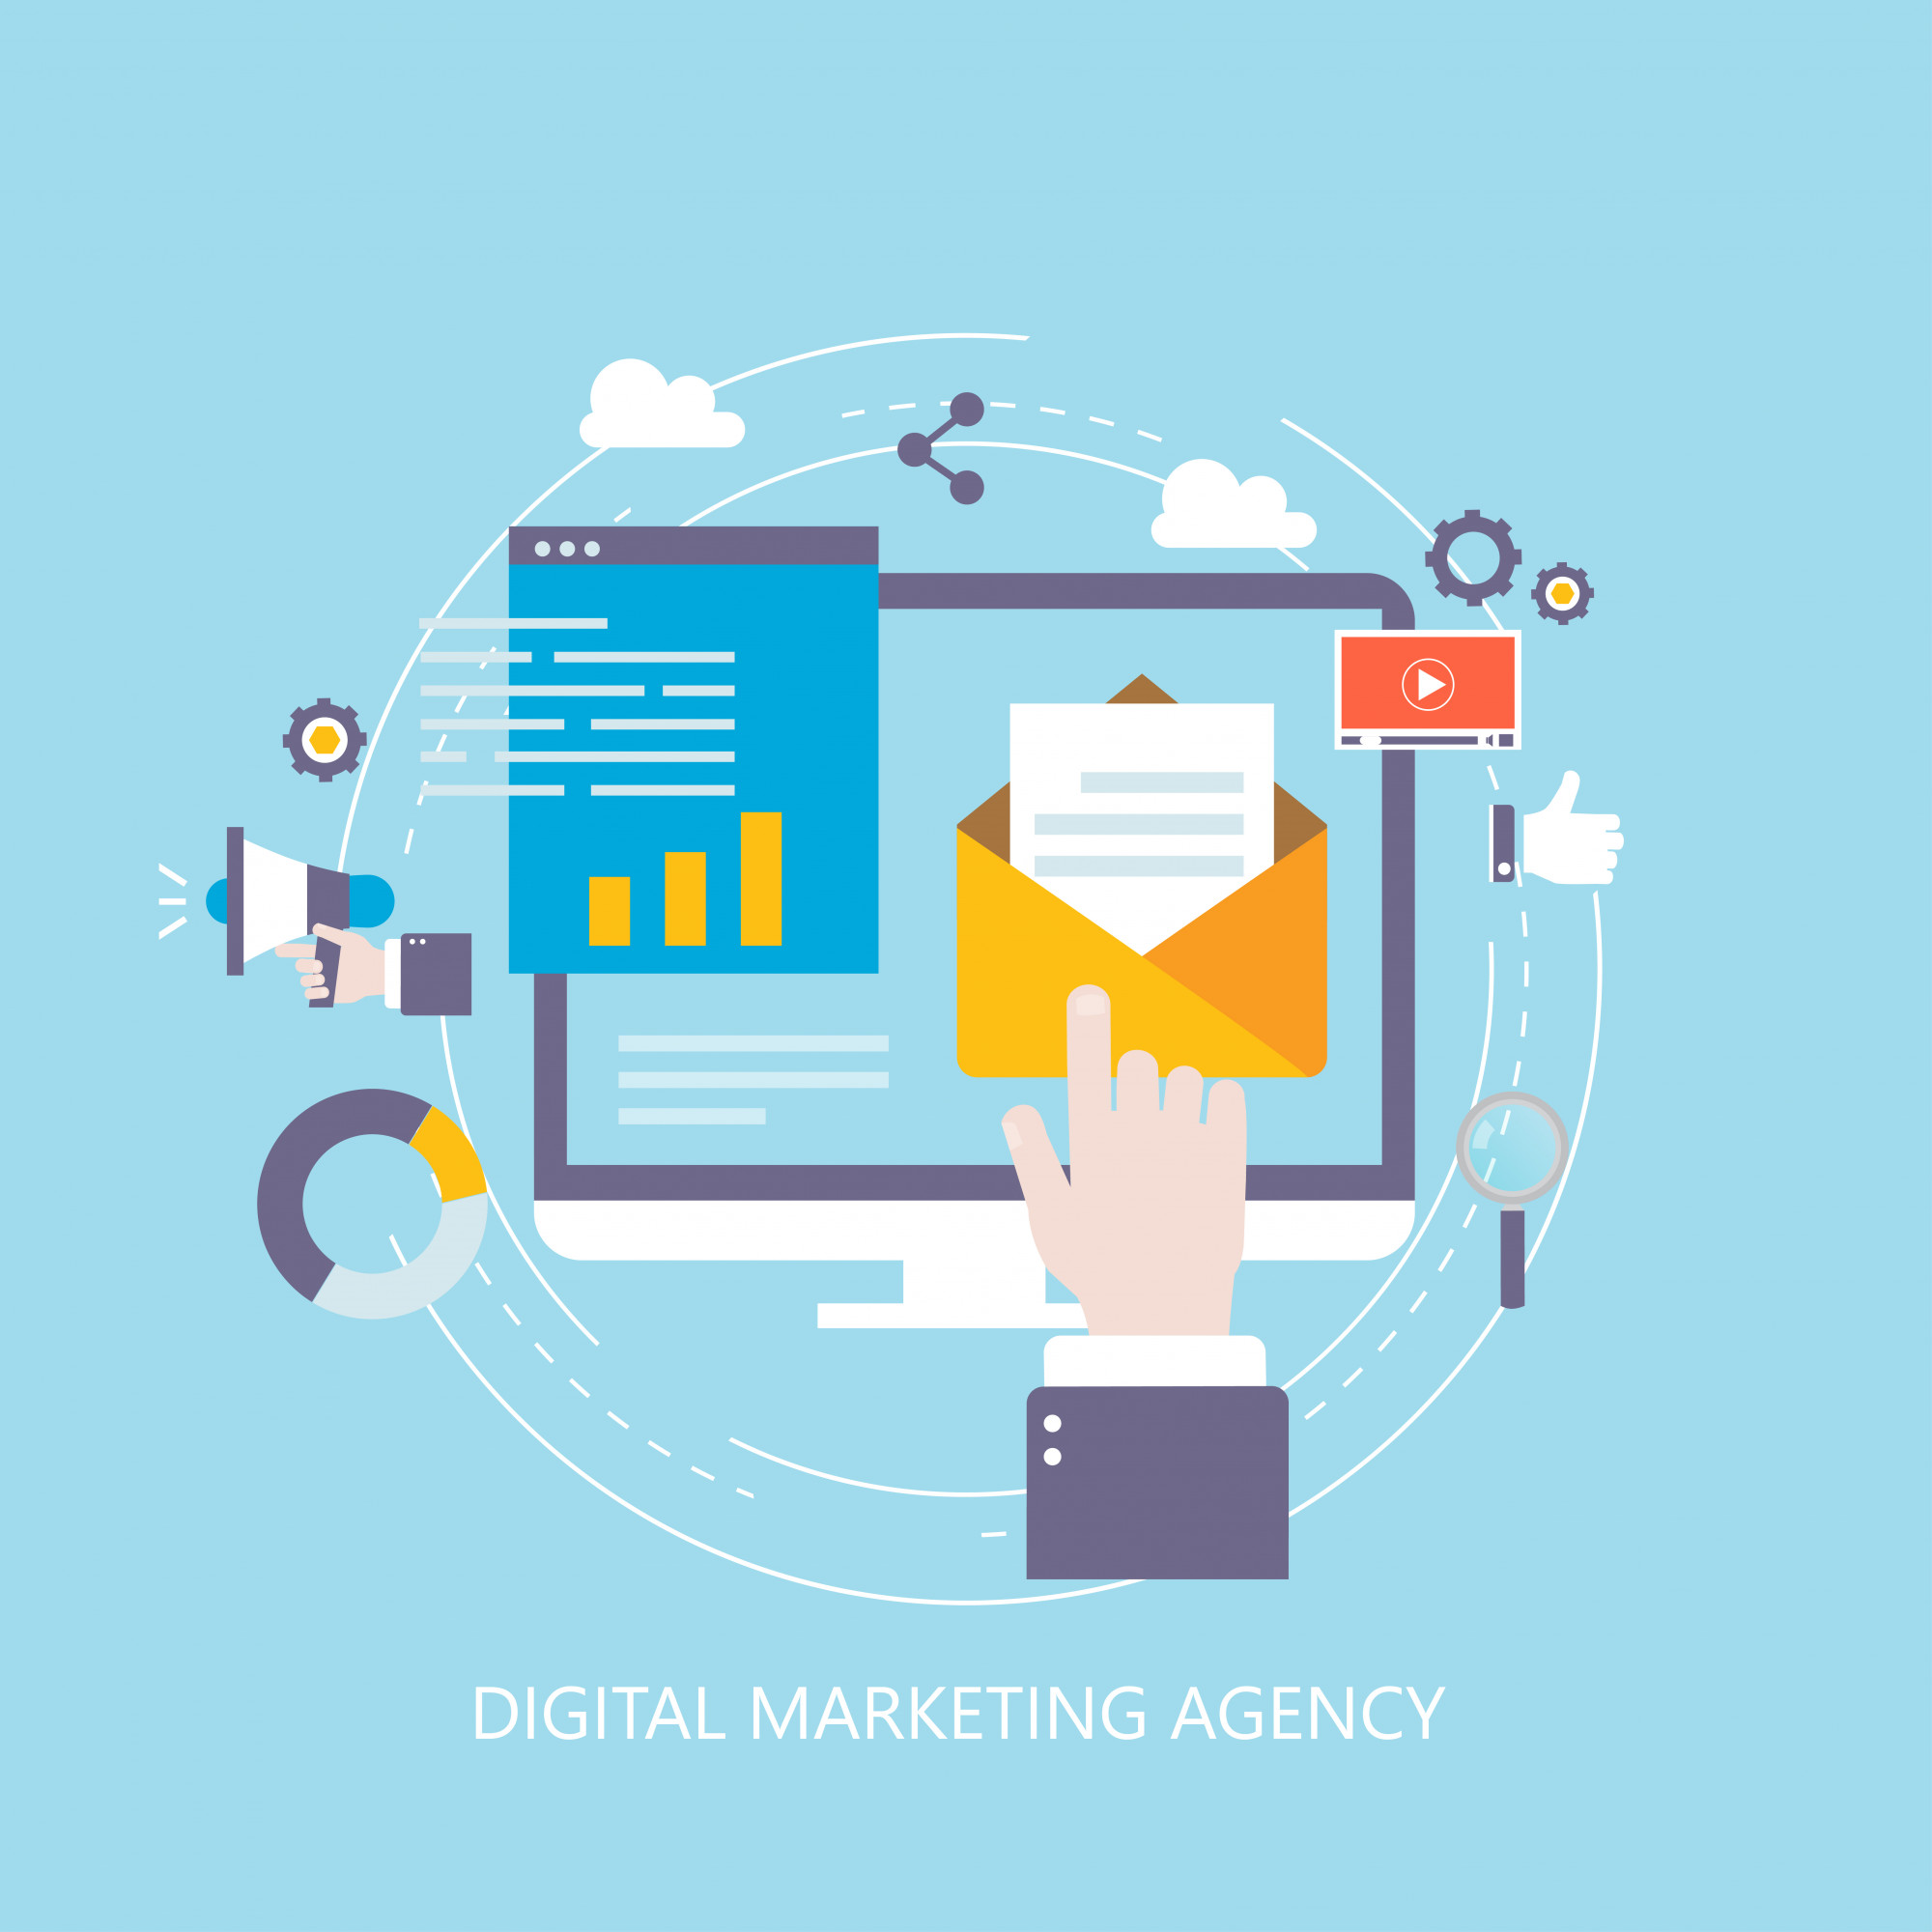 Digital marketing agency and online promotion